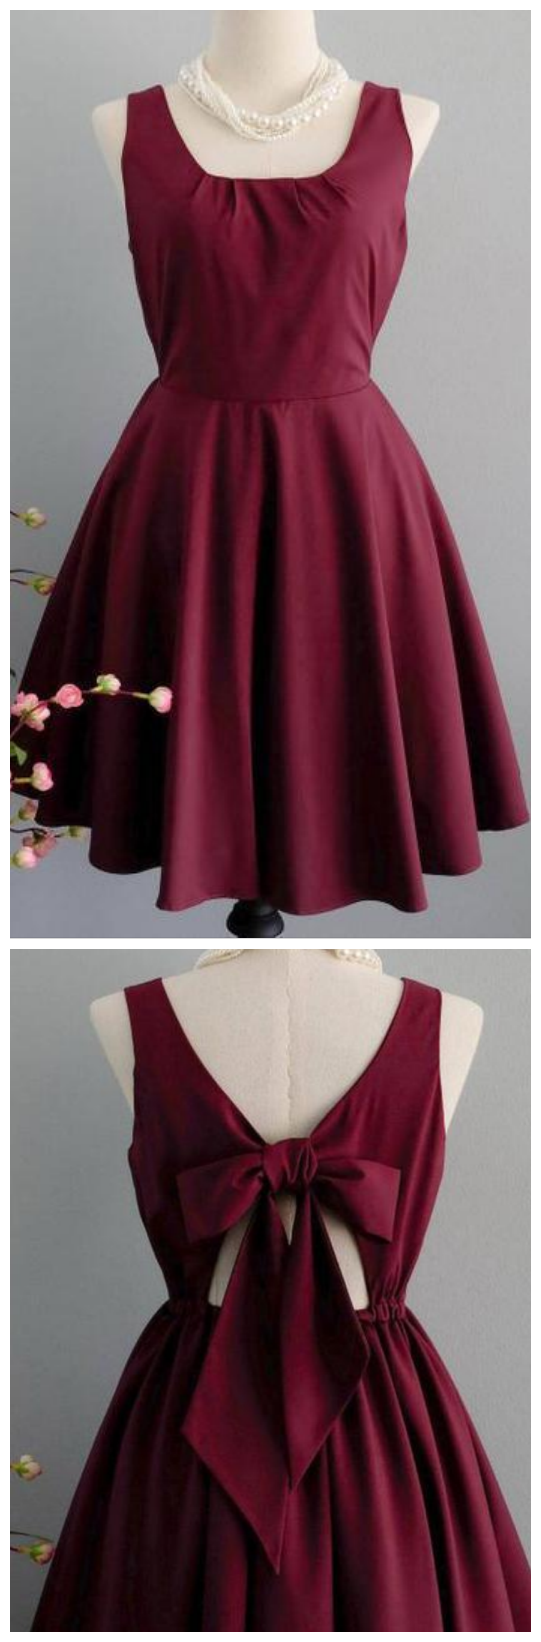 Burgundy Sleeveless Backless Homecoming Dresses,A Line Cocktail Dresses